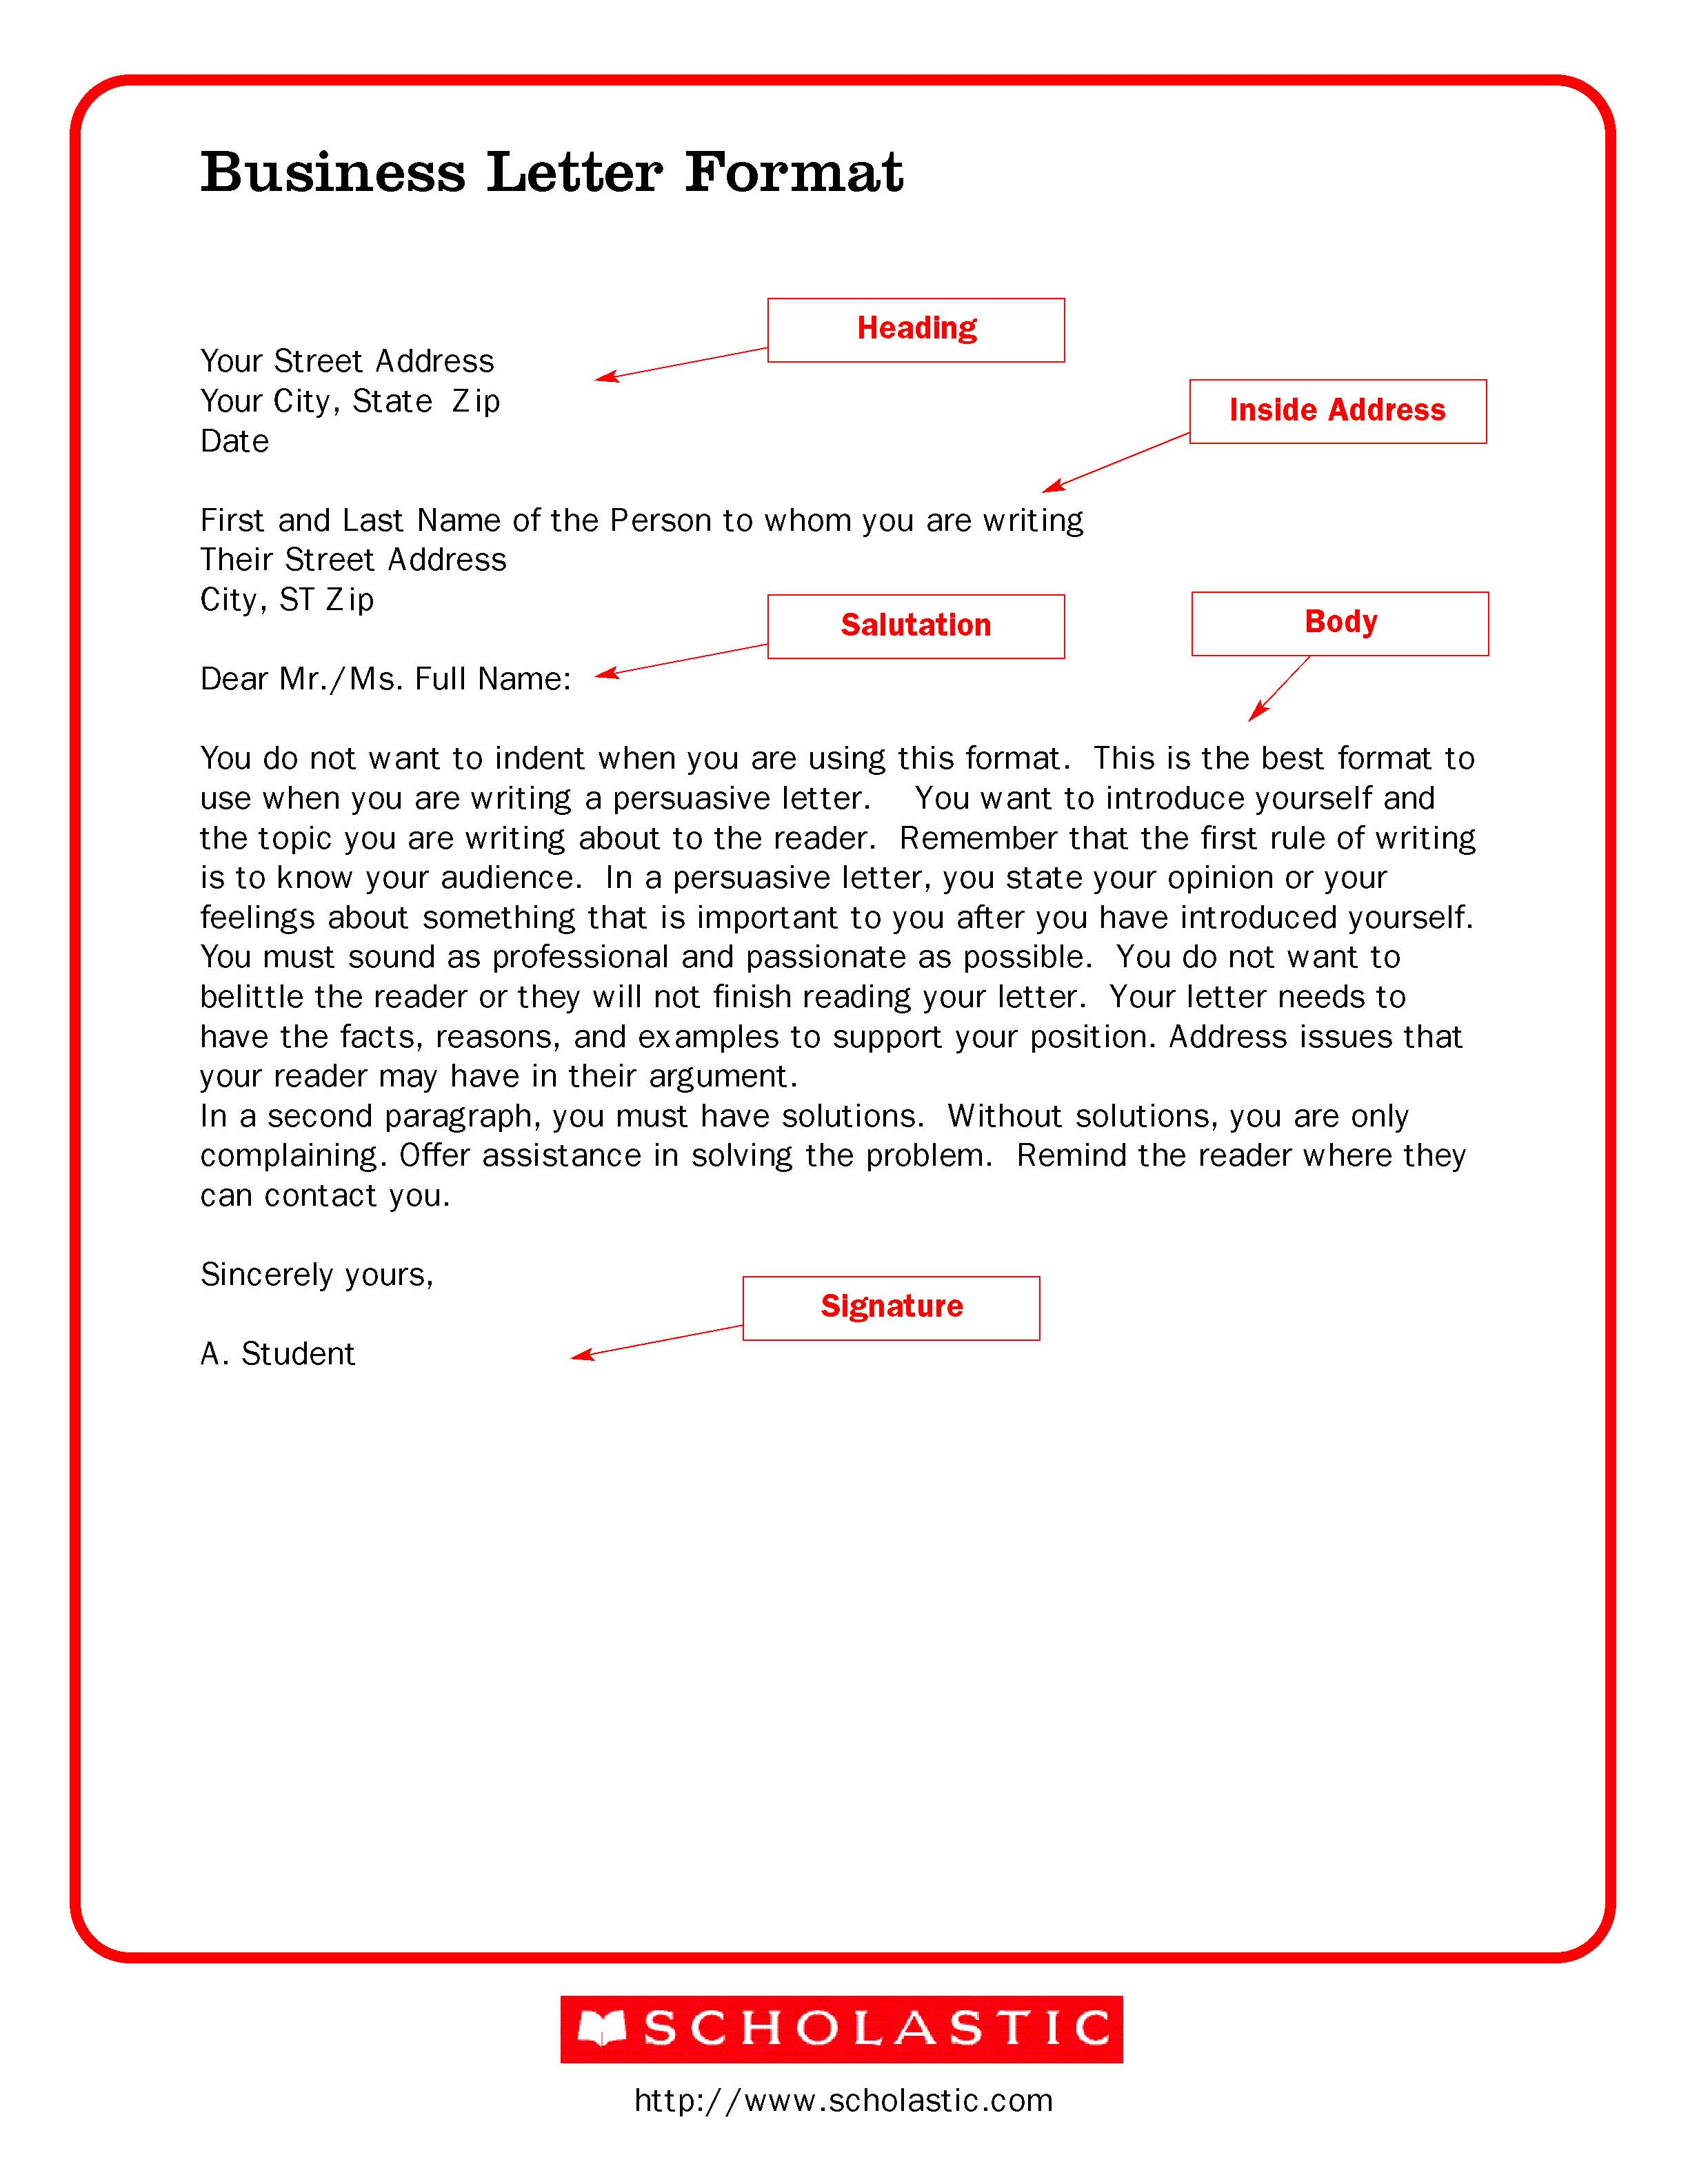 Business letter format letterhead sample friedricerecipe Images